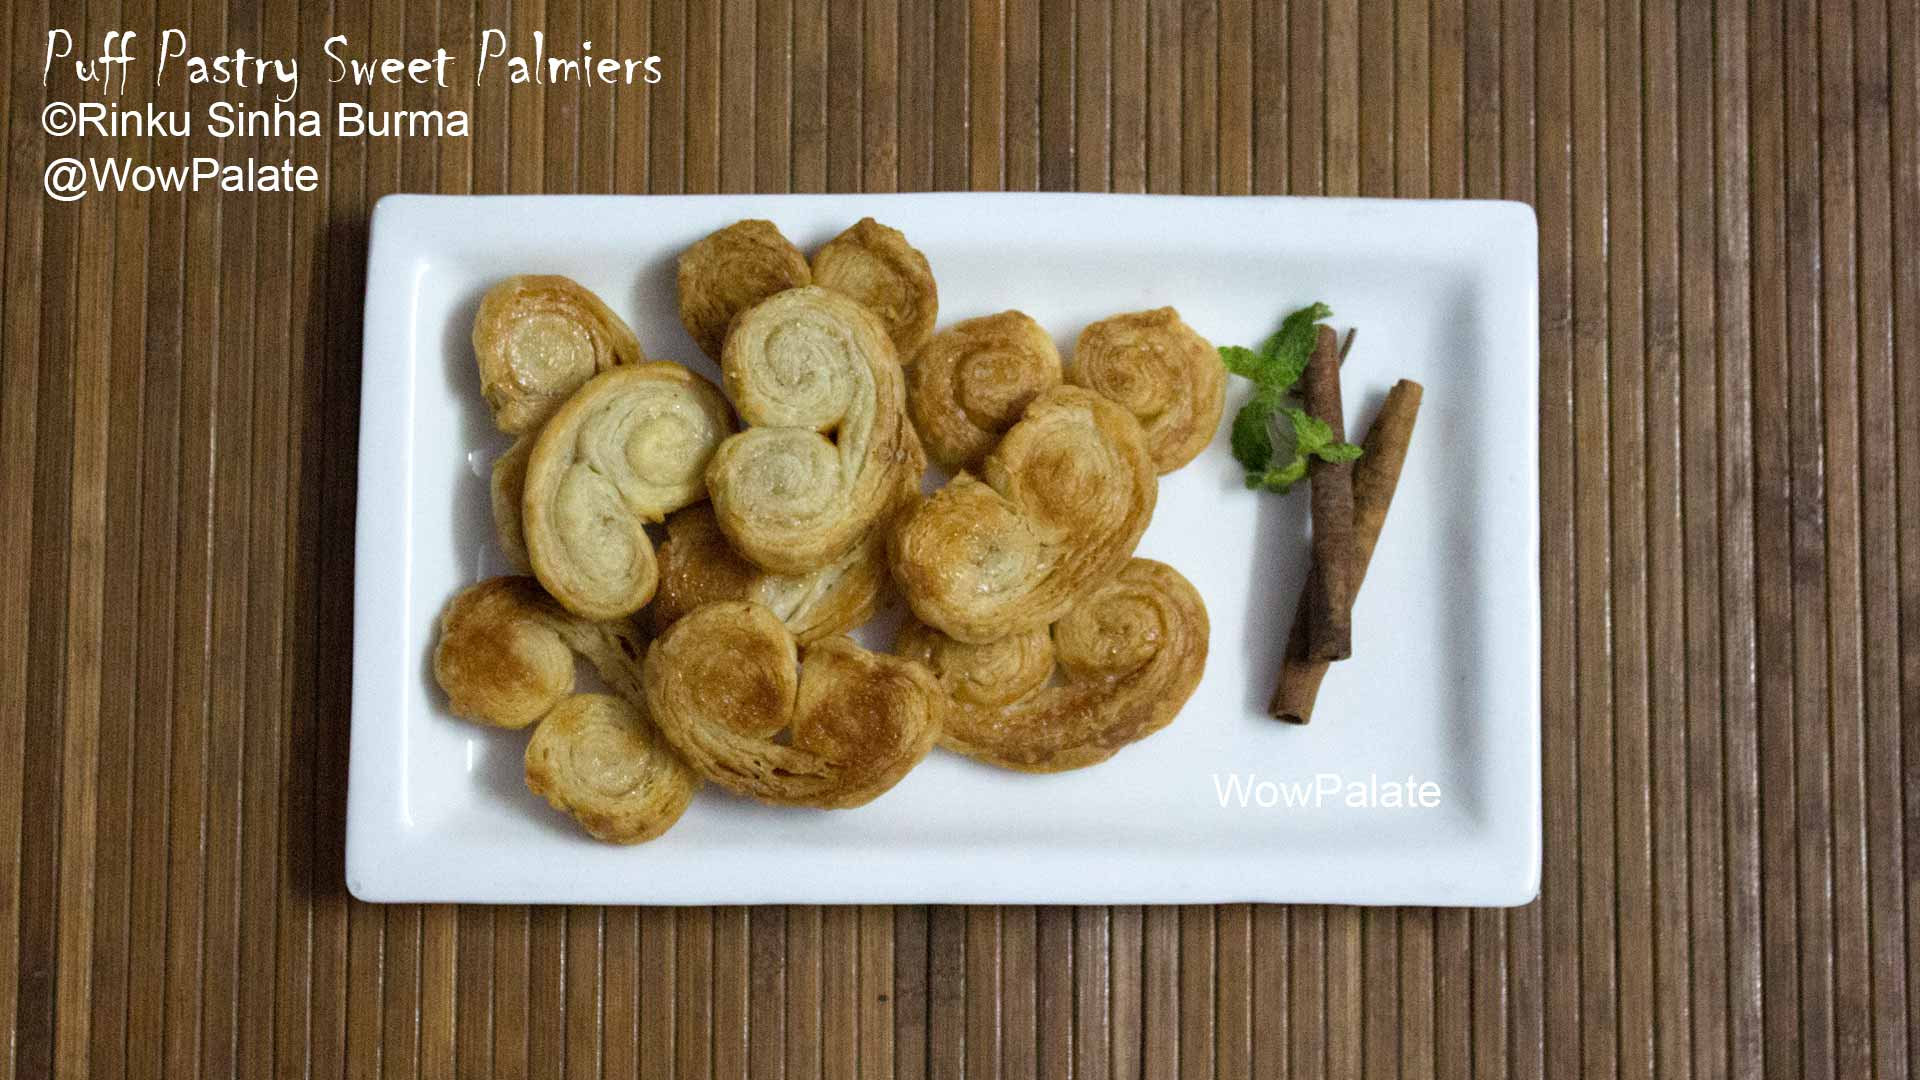 Puff Pastry Sweet Palmiers